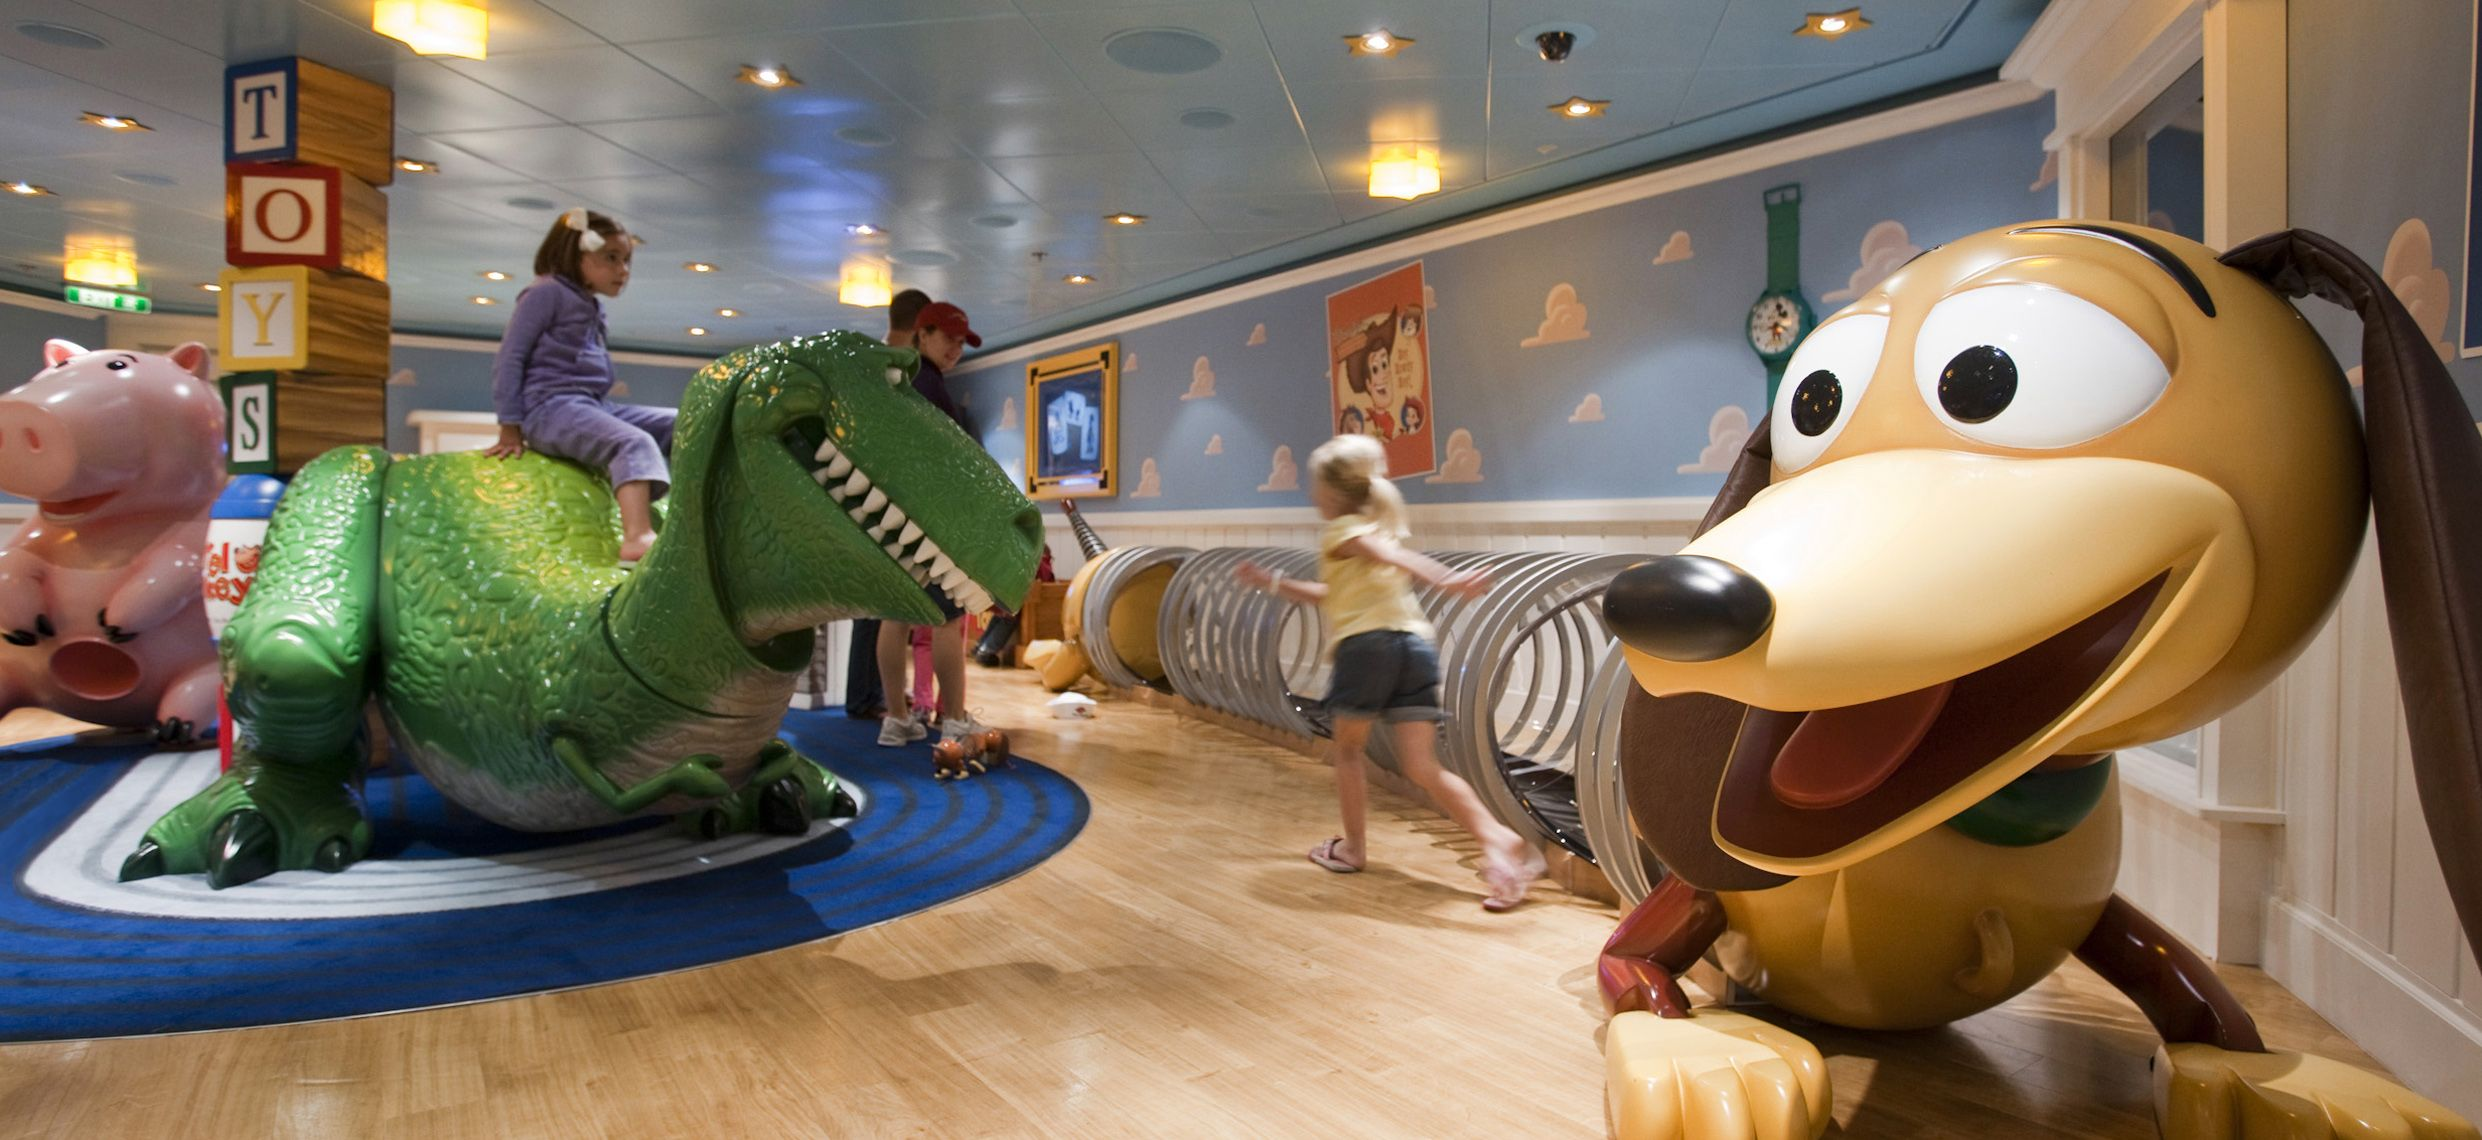 disney dream cruises good for family and adult fun all things rh pinterest com